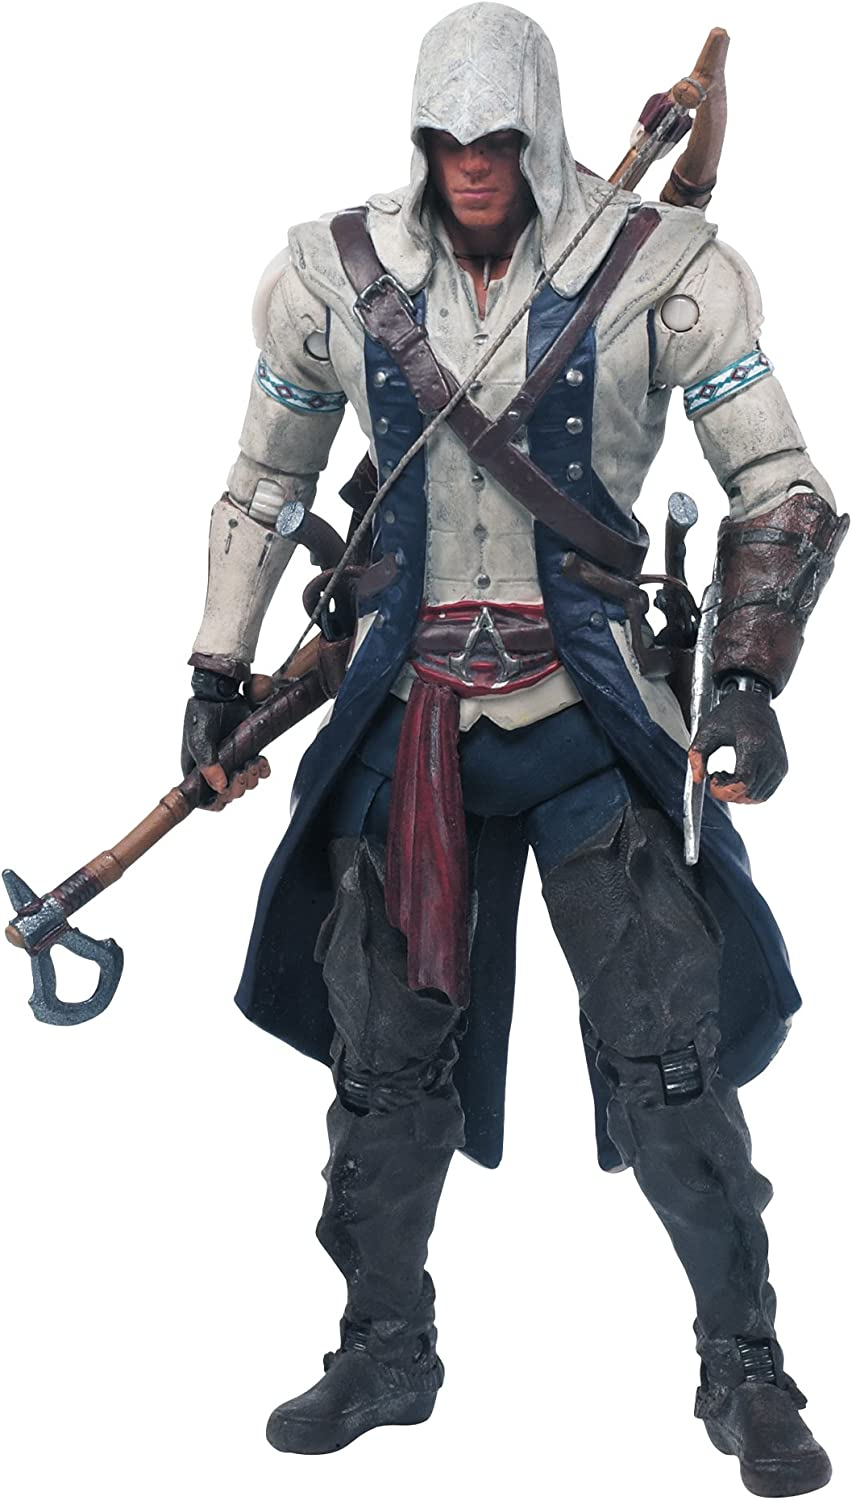 Amazon Com Mcfarlane Toys Assassin S Creed Connor Action Figure Toys Games